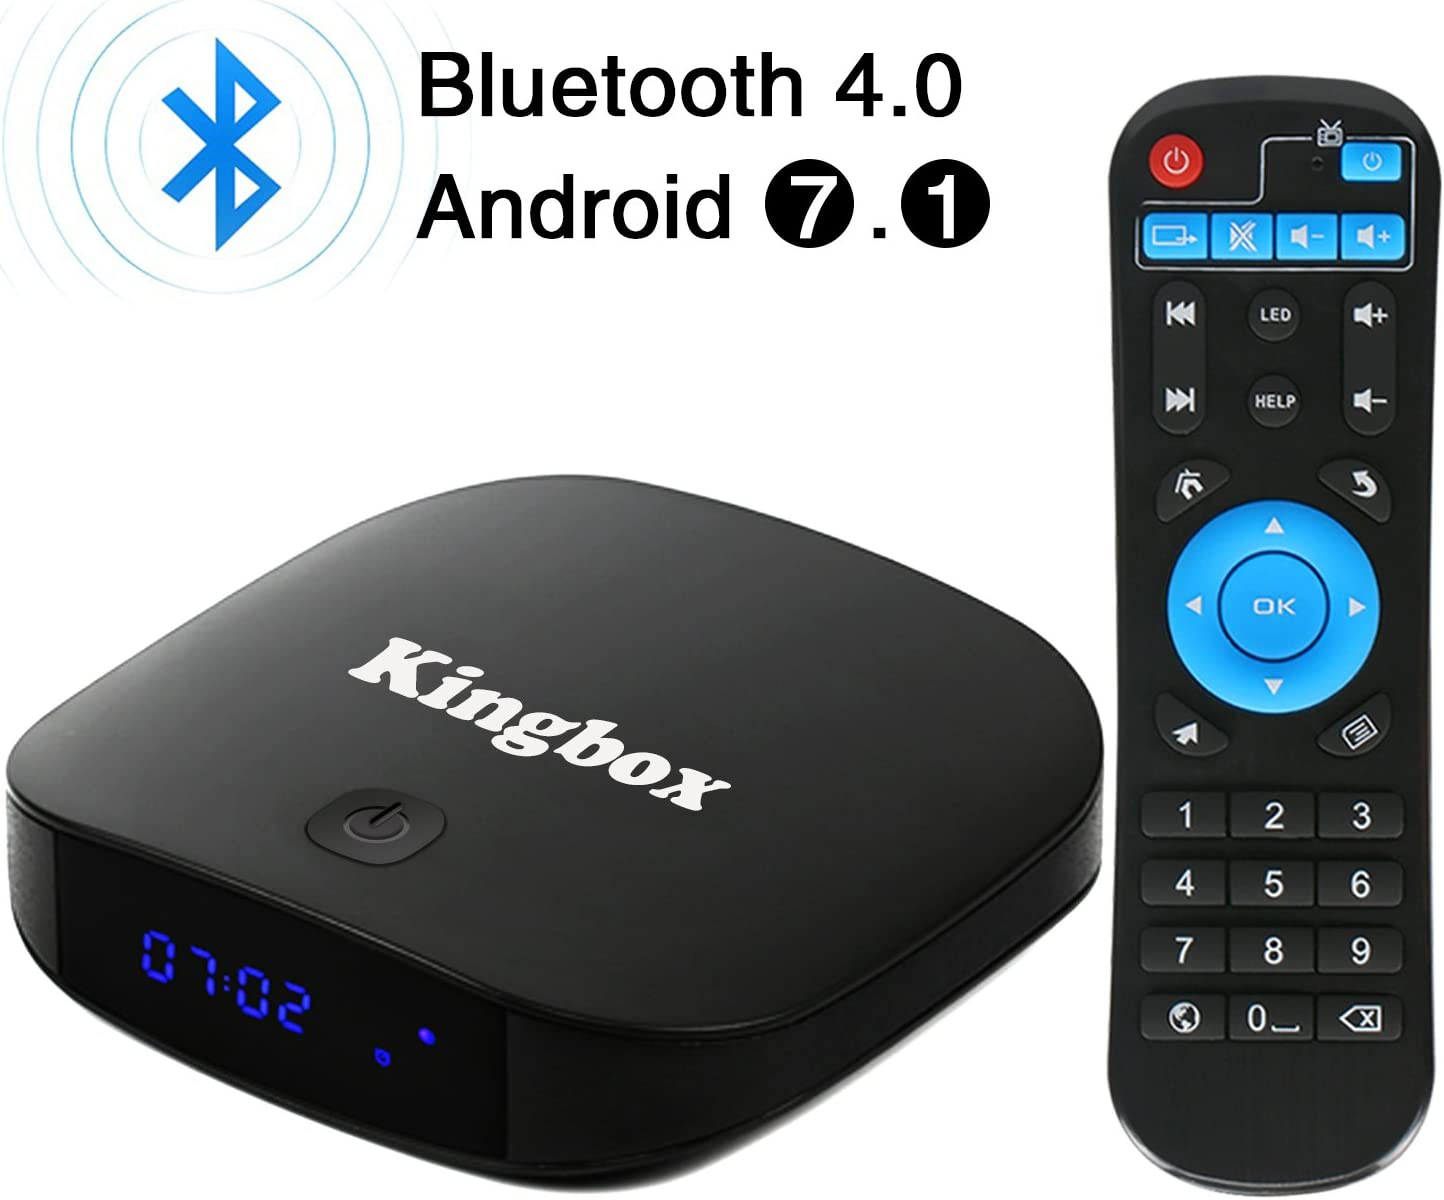 Kingbox Android TV Box Bluetooth 4.0 / Android 7.1 / 3D / 4K Full HD / 2.4 GHz WiFi/H.265 Smart Scatola TV (2+8): Amazon.es: Electrónica